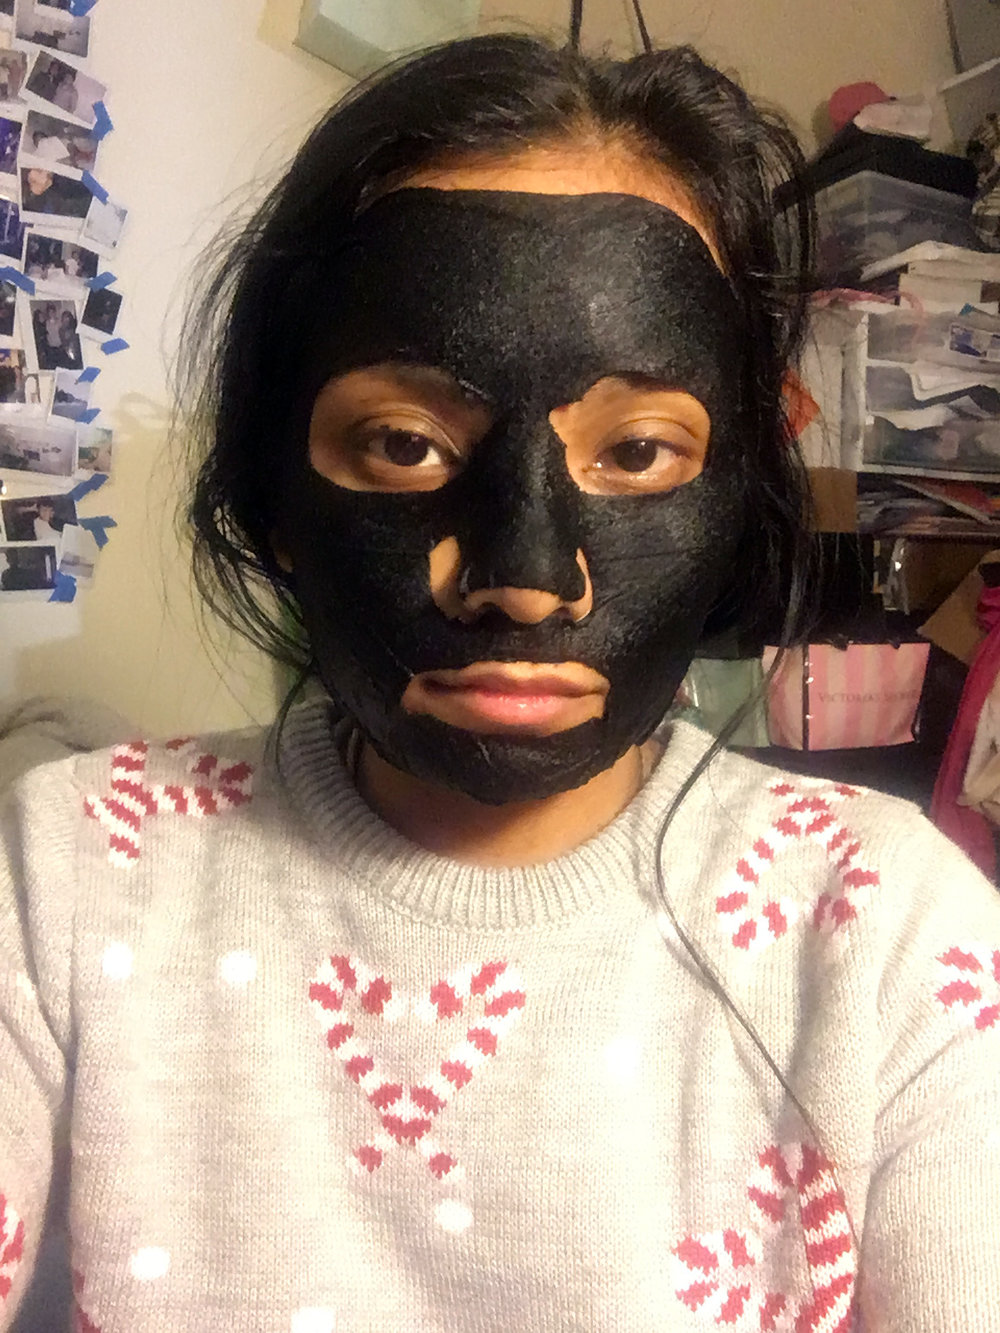 Ipsy-February-Review-Soo-AE-Sheet-Mask-Duo-Purifying-Black-Charcoal-Mask-LINDATENCHITRAN-4-1932x2576.jpg